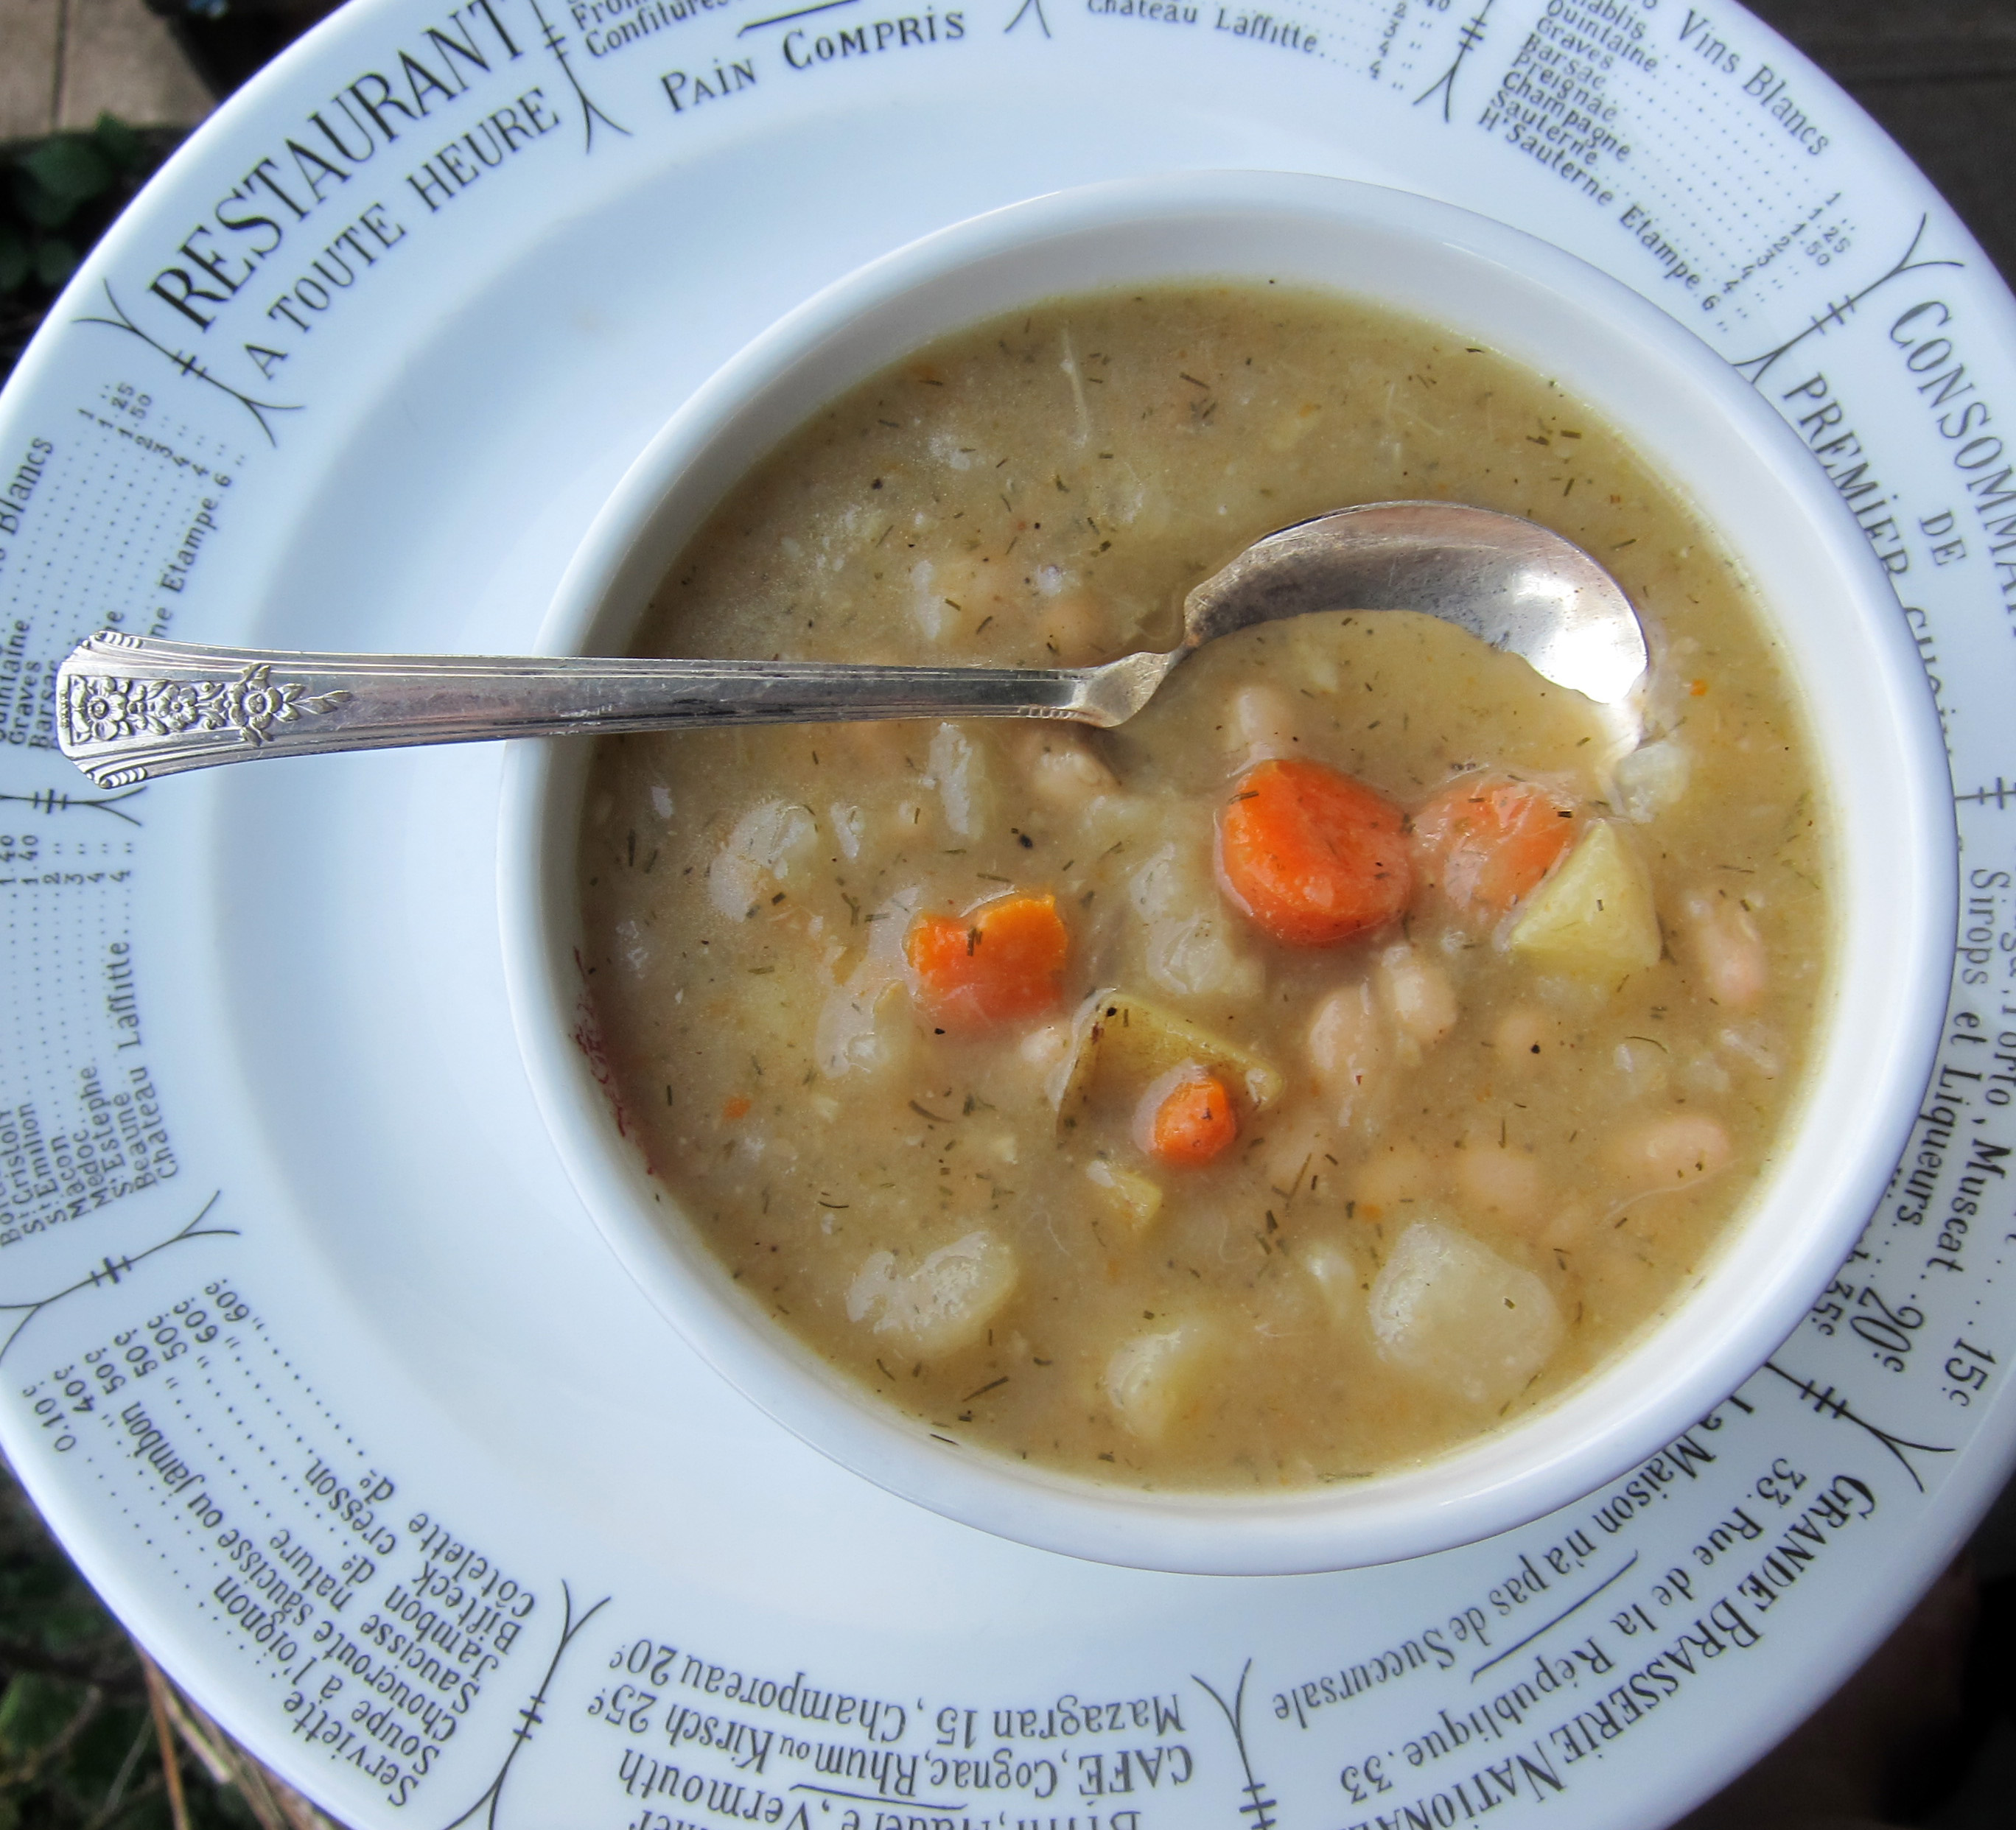 Dill Cabbage With Navy Beans Soup Recipe